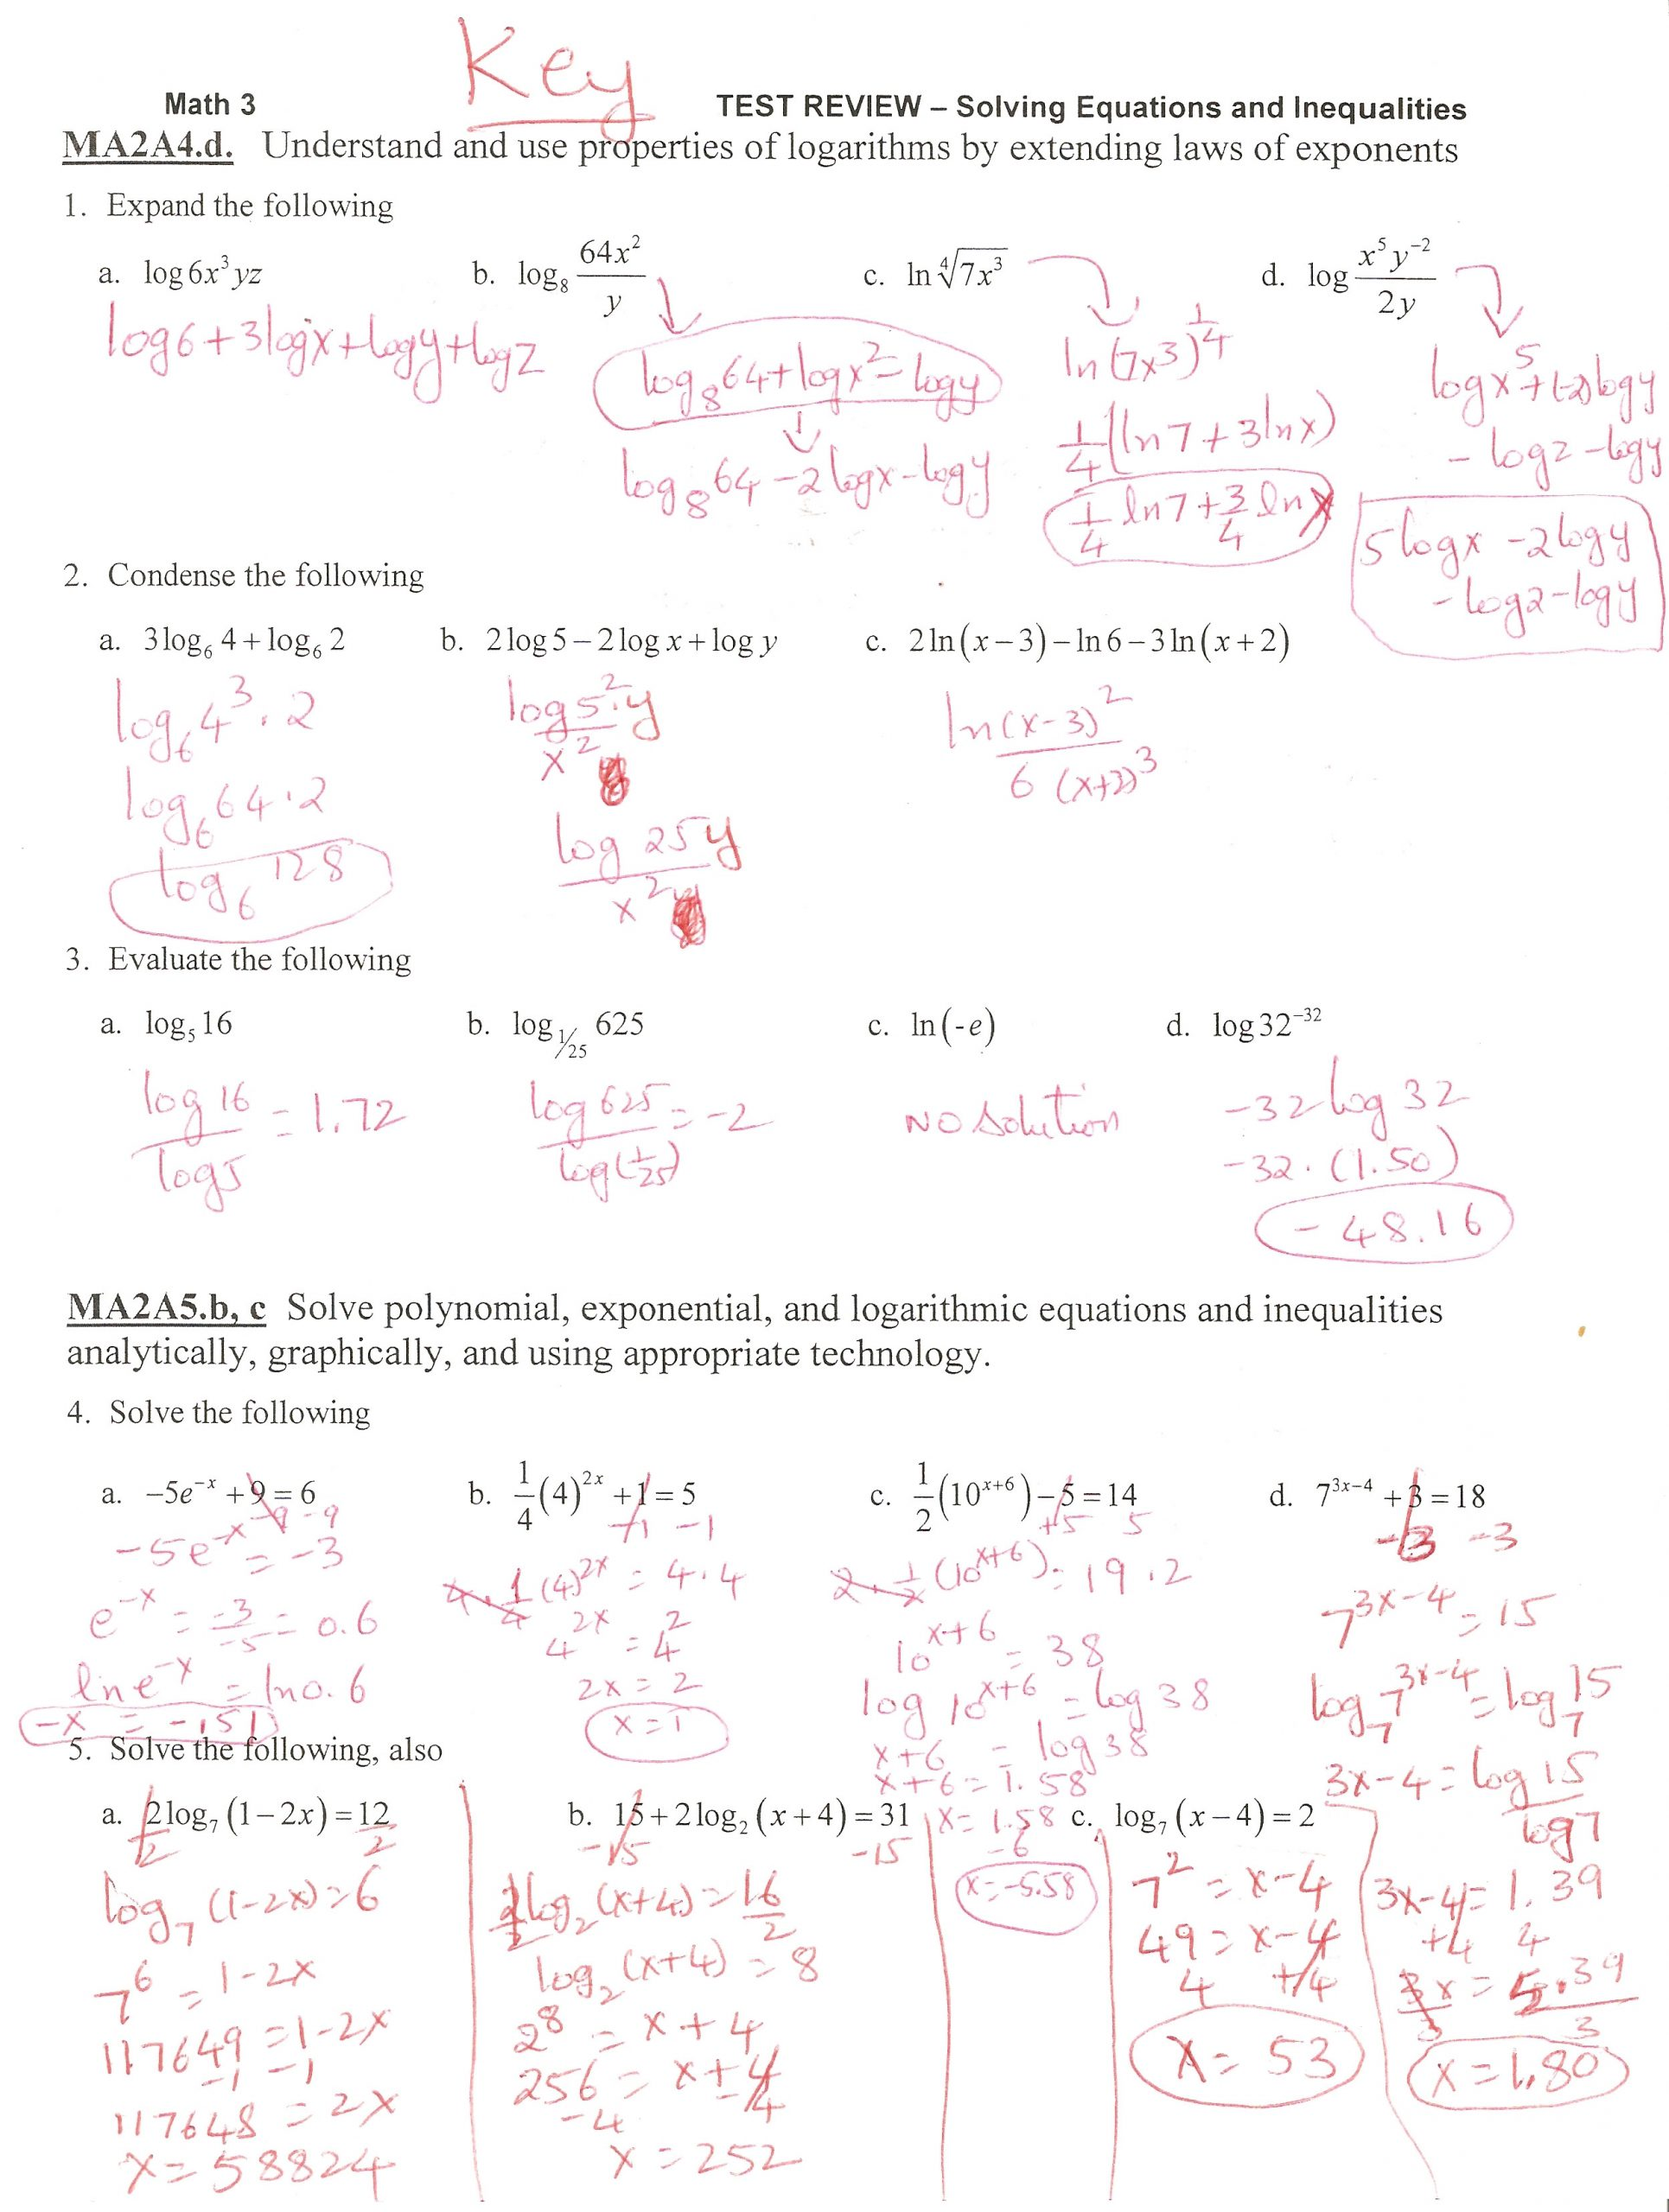 Solving Equations and Inequalities Worksheet solving Equations and Inequalities Test Review Tessshebaylo